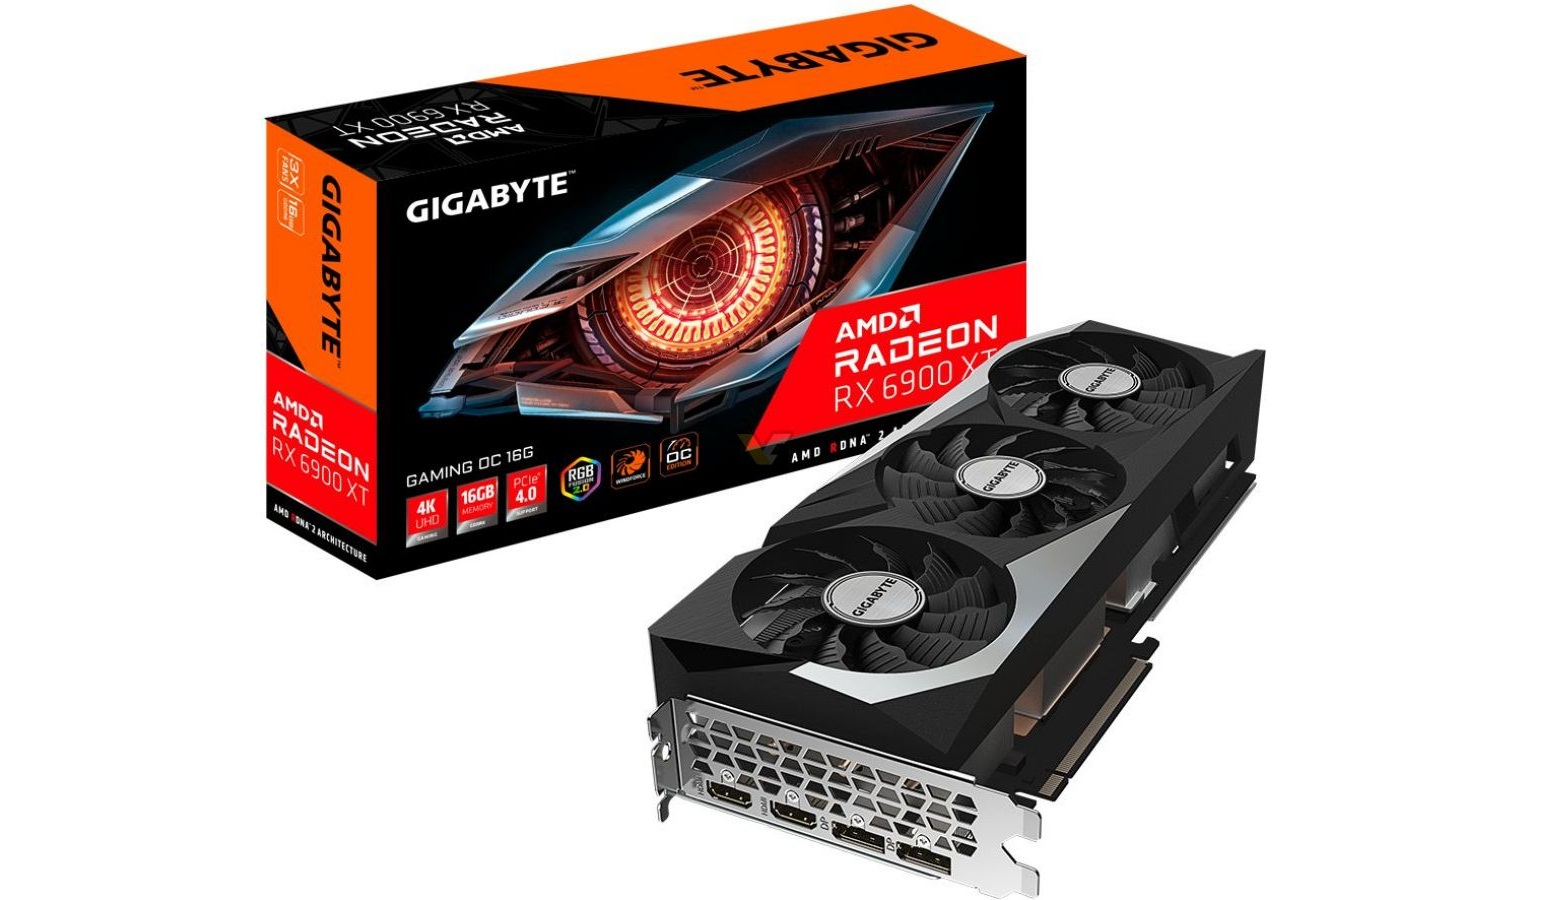 Gigabyte Radeon RX 6800 series prices are a big oof for gamers compared to AMD's MSRPs: US$250 more for an RX 6800 XT-based AORUS Master variant